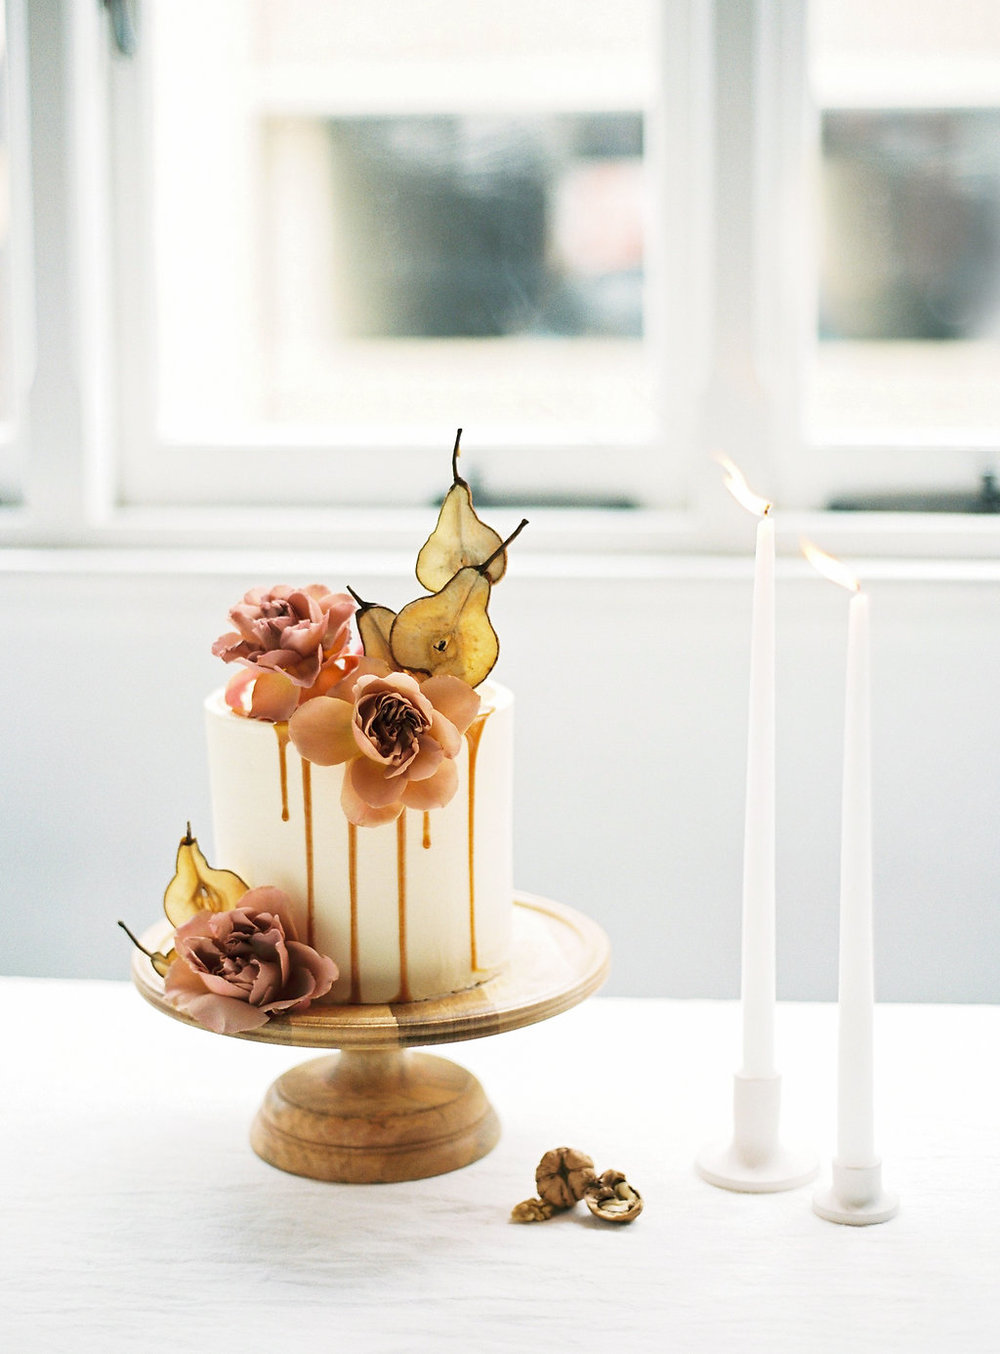 Aravella Event Design | Modern Minimalist Bridal Inspiration | Photo by Katie Grant Photography | Wedding Cake | Drip Cake